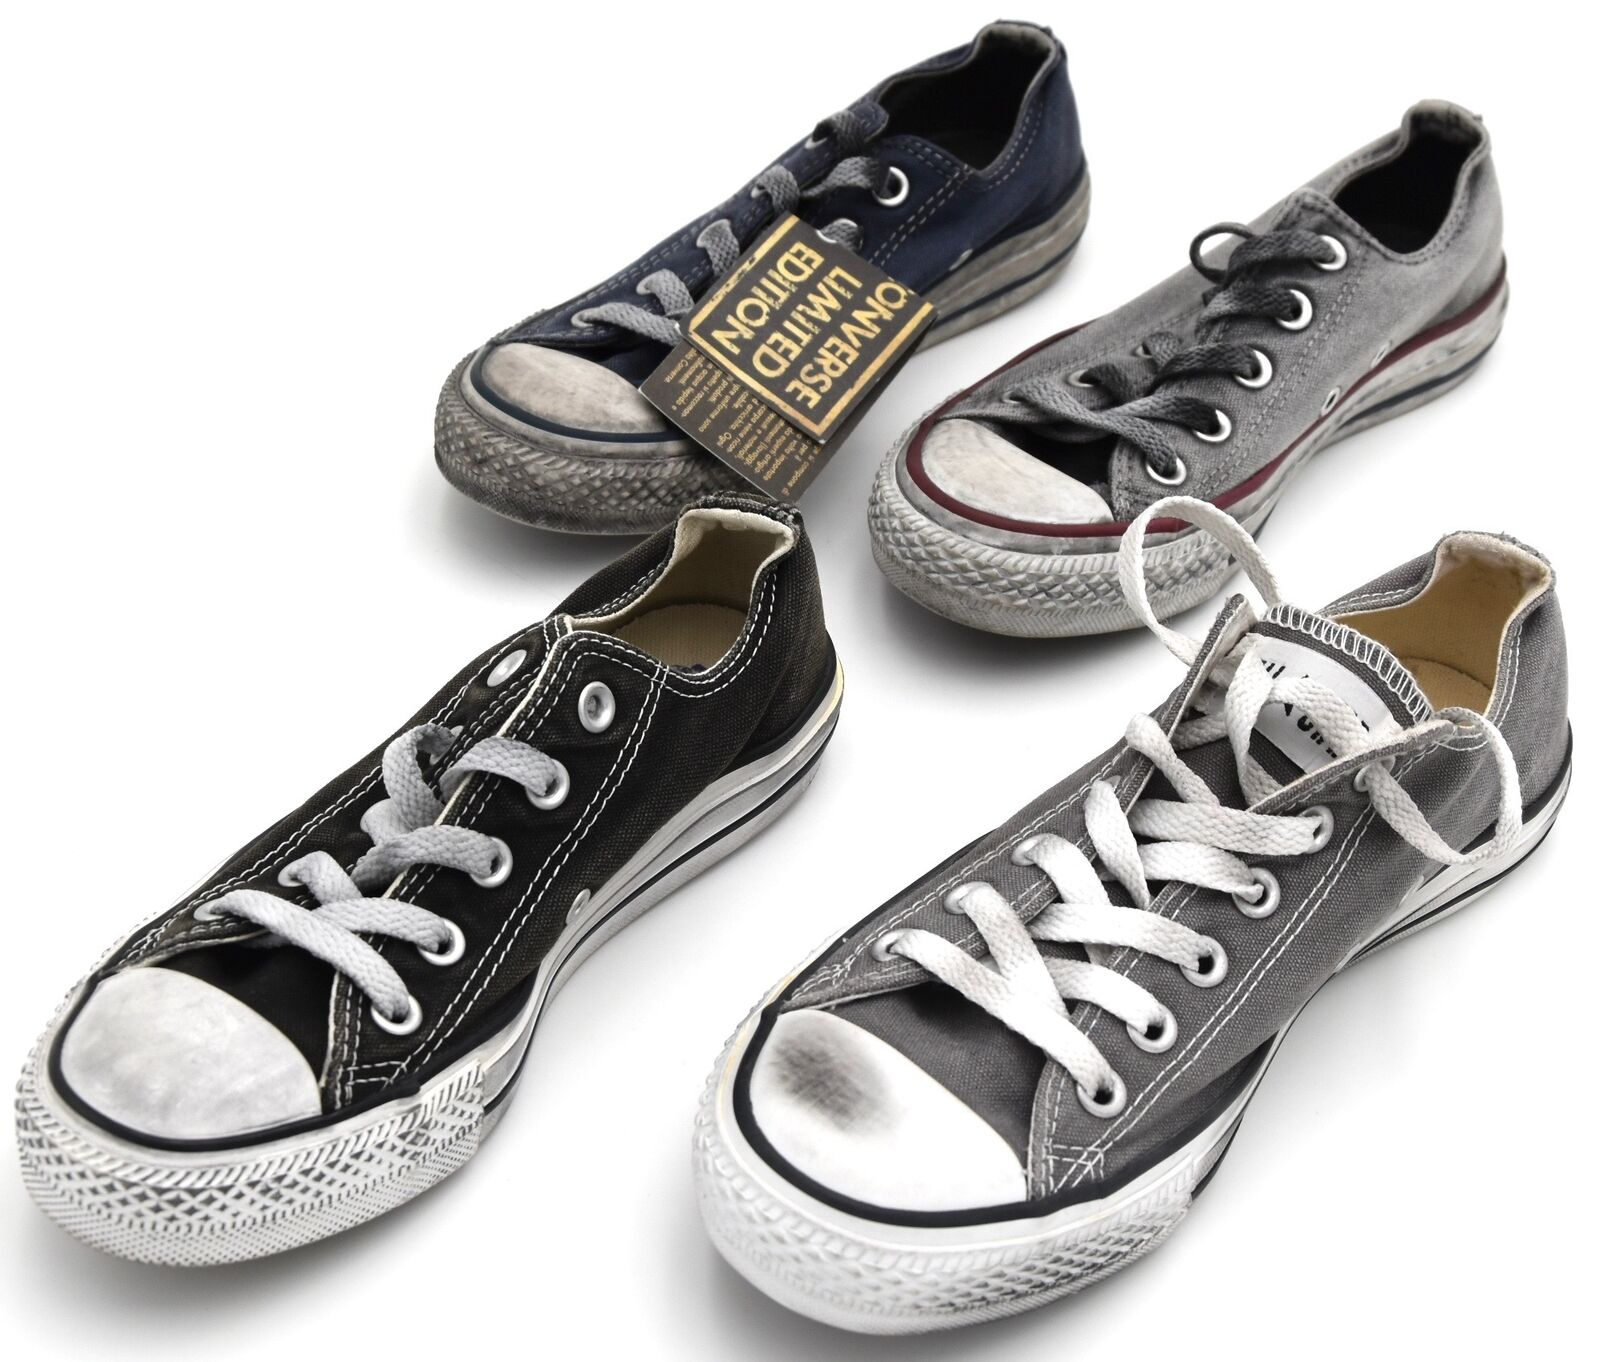 CONVERSE UOMO UOMO UOMO DONNA UNISEX SCARPA scarpe da ginnastica CASUAL ART. ALL STAR OX CANVAS LTD 7035a9